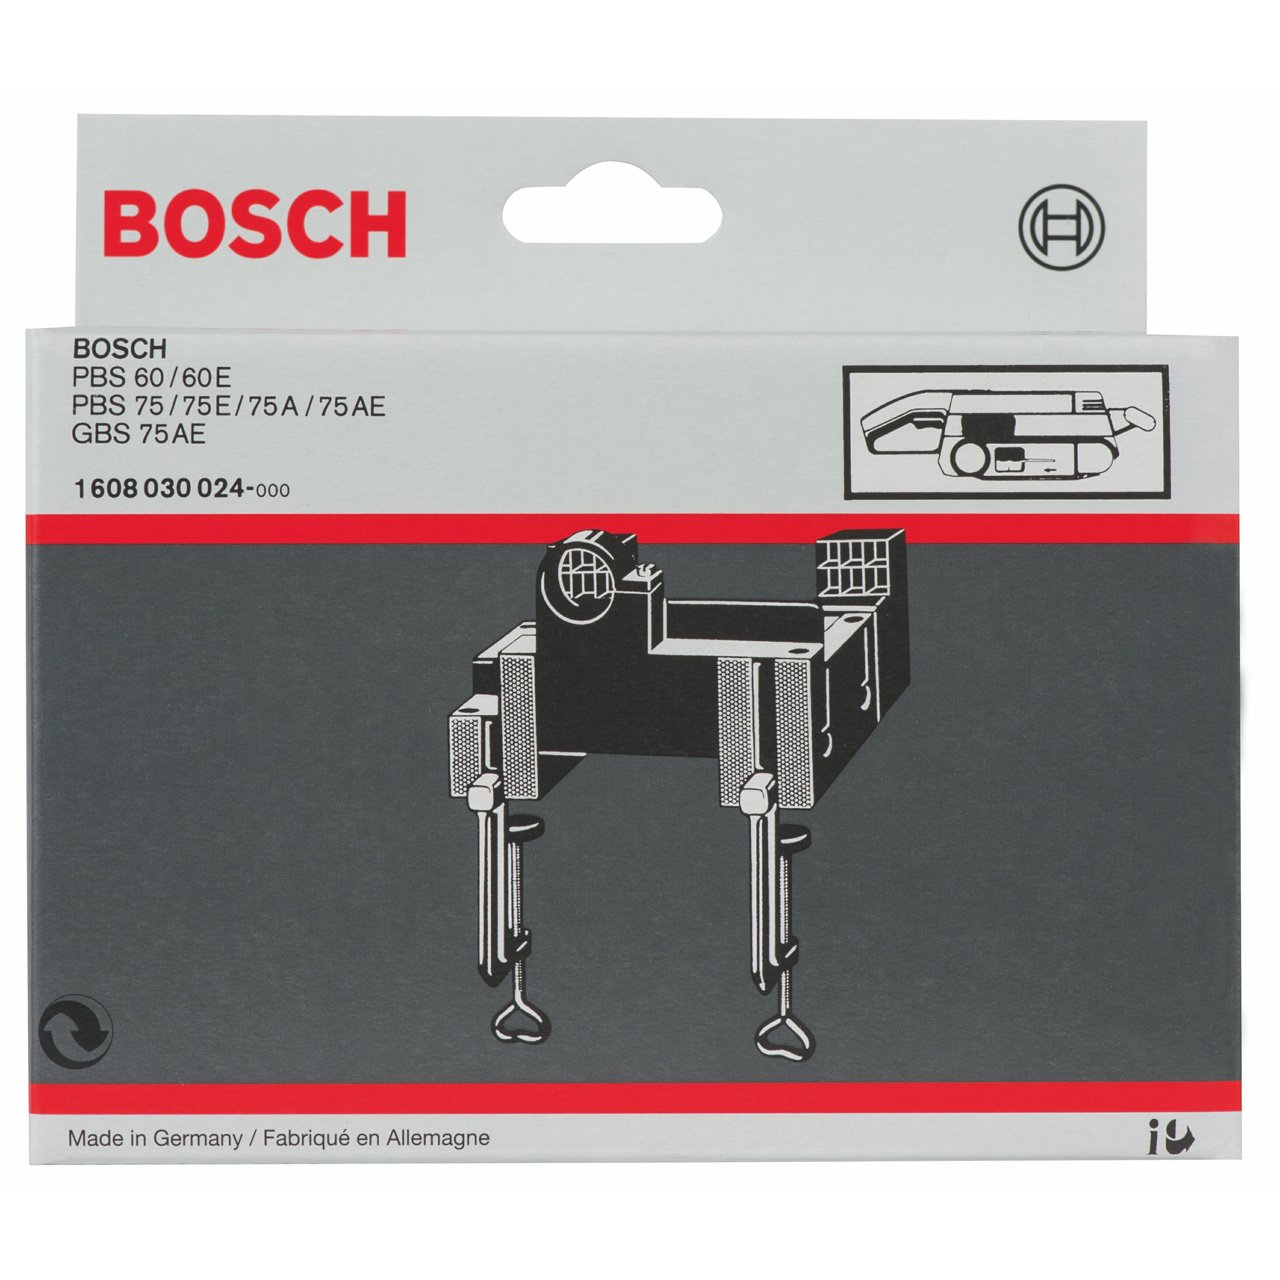 Bosch 1608030024 Sub-Frame for Bosch Belt Sanders GBS 75 A/GBS 75 AE Professional/PBS 75 Robert Bosch Limited